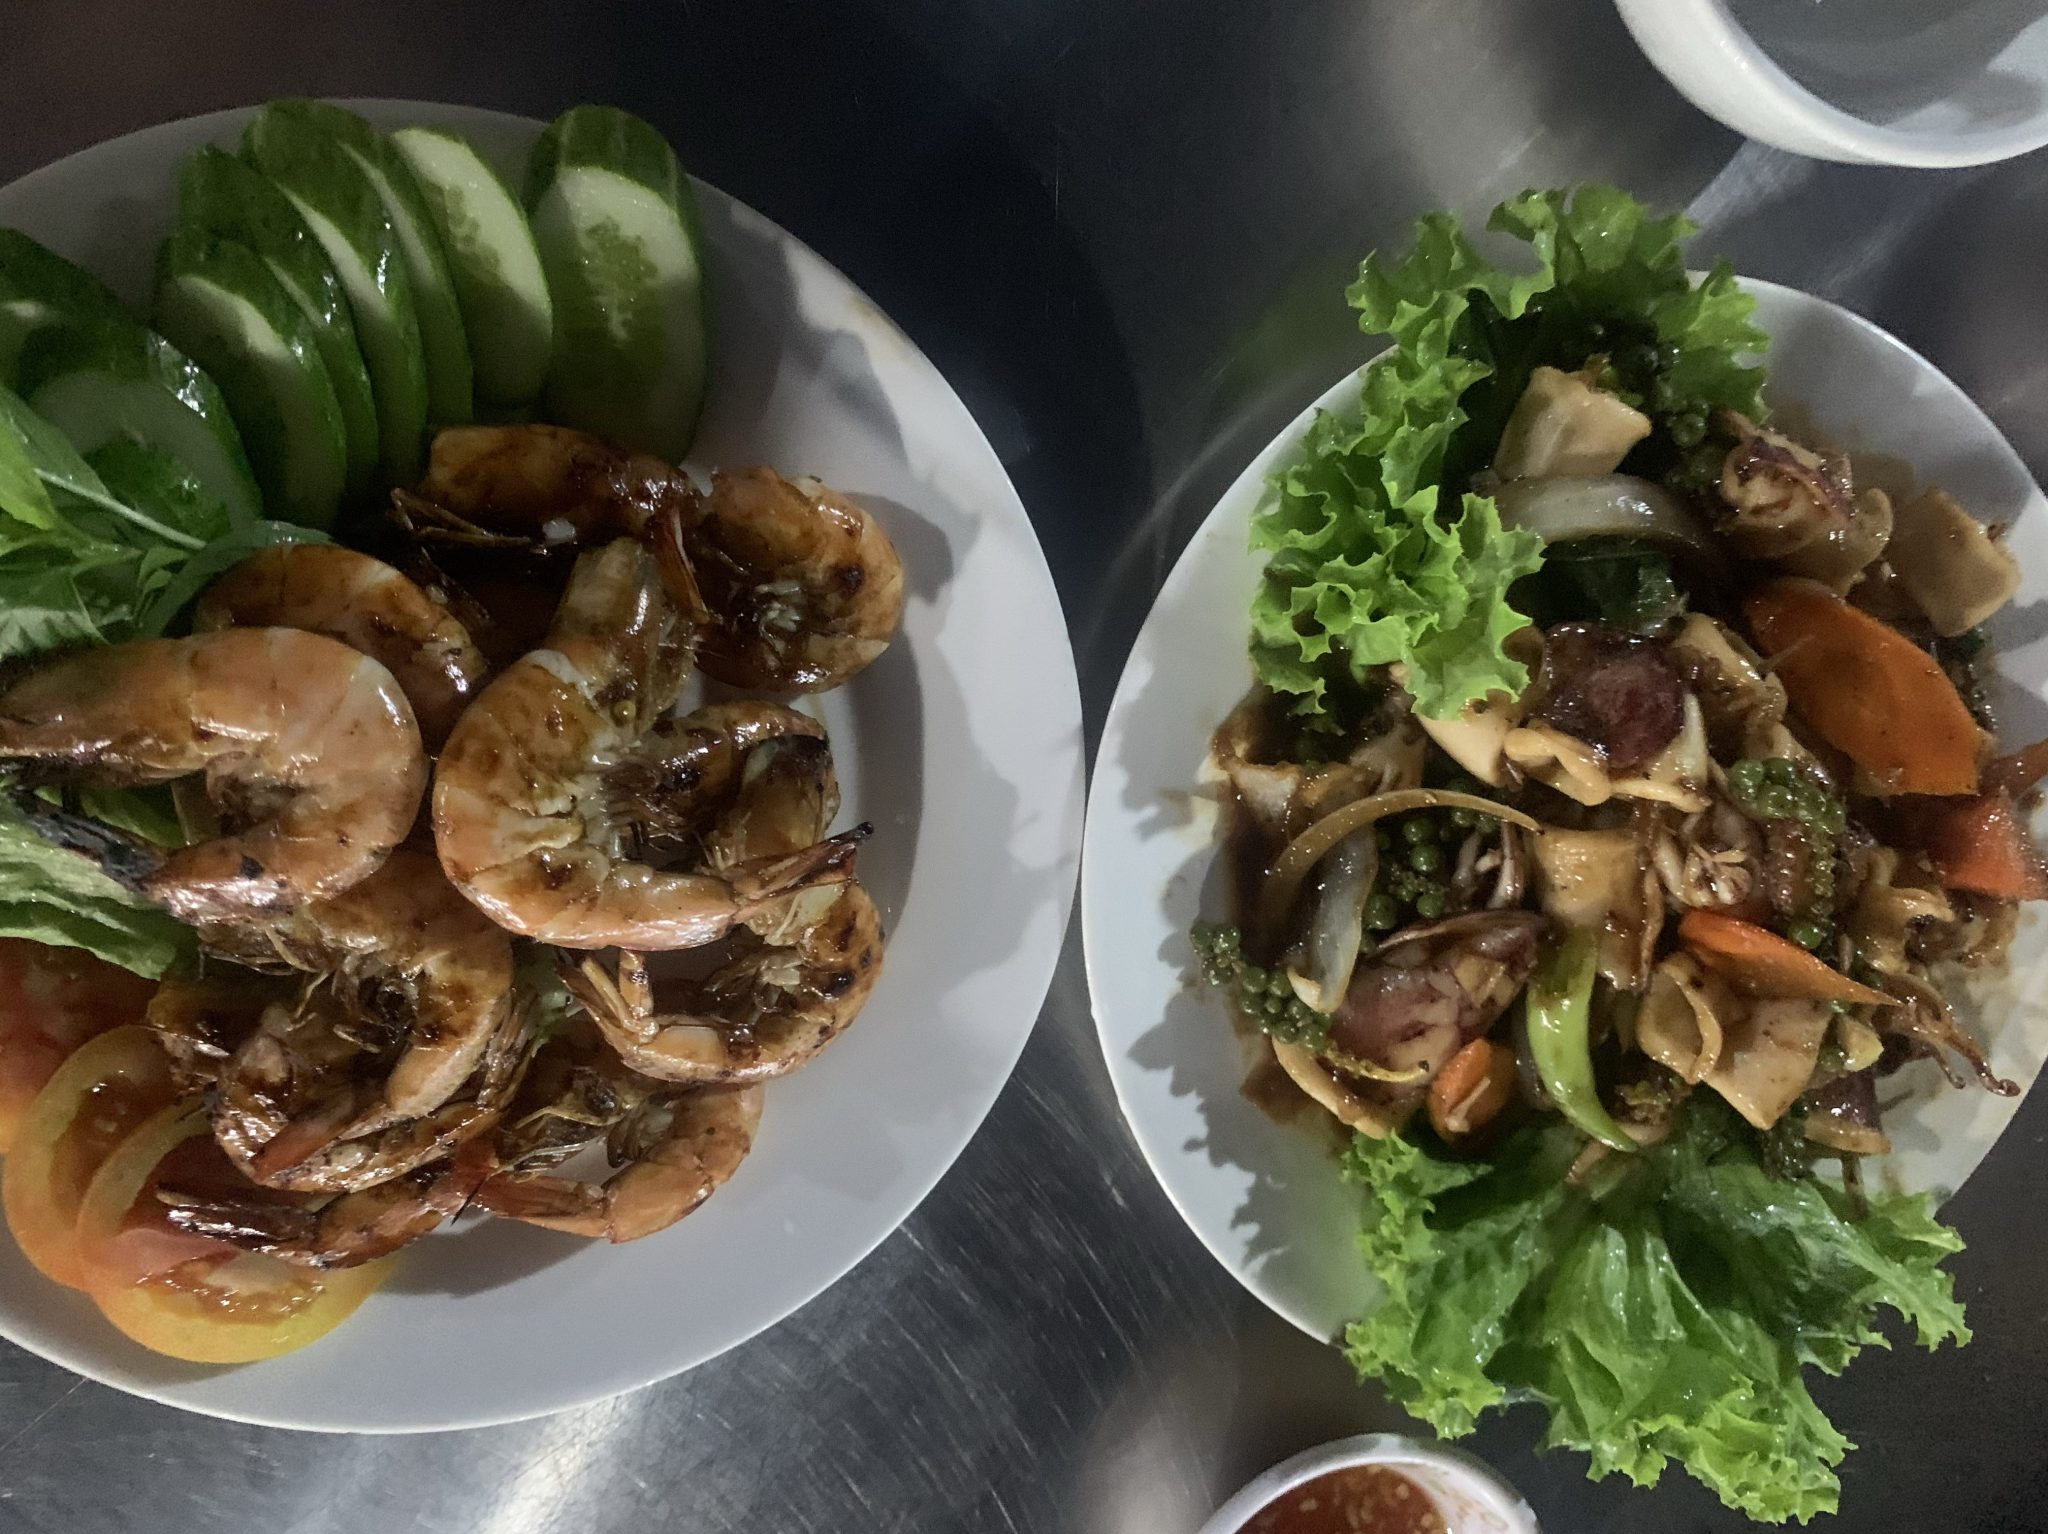 Street Food Koh Kong - 5 Best Street Food places in Cambodia